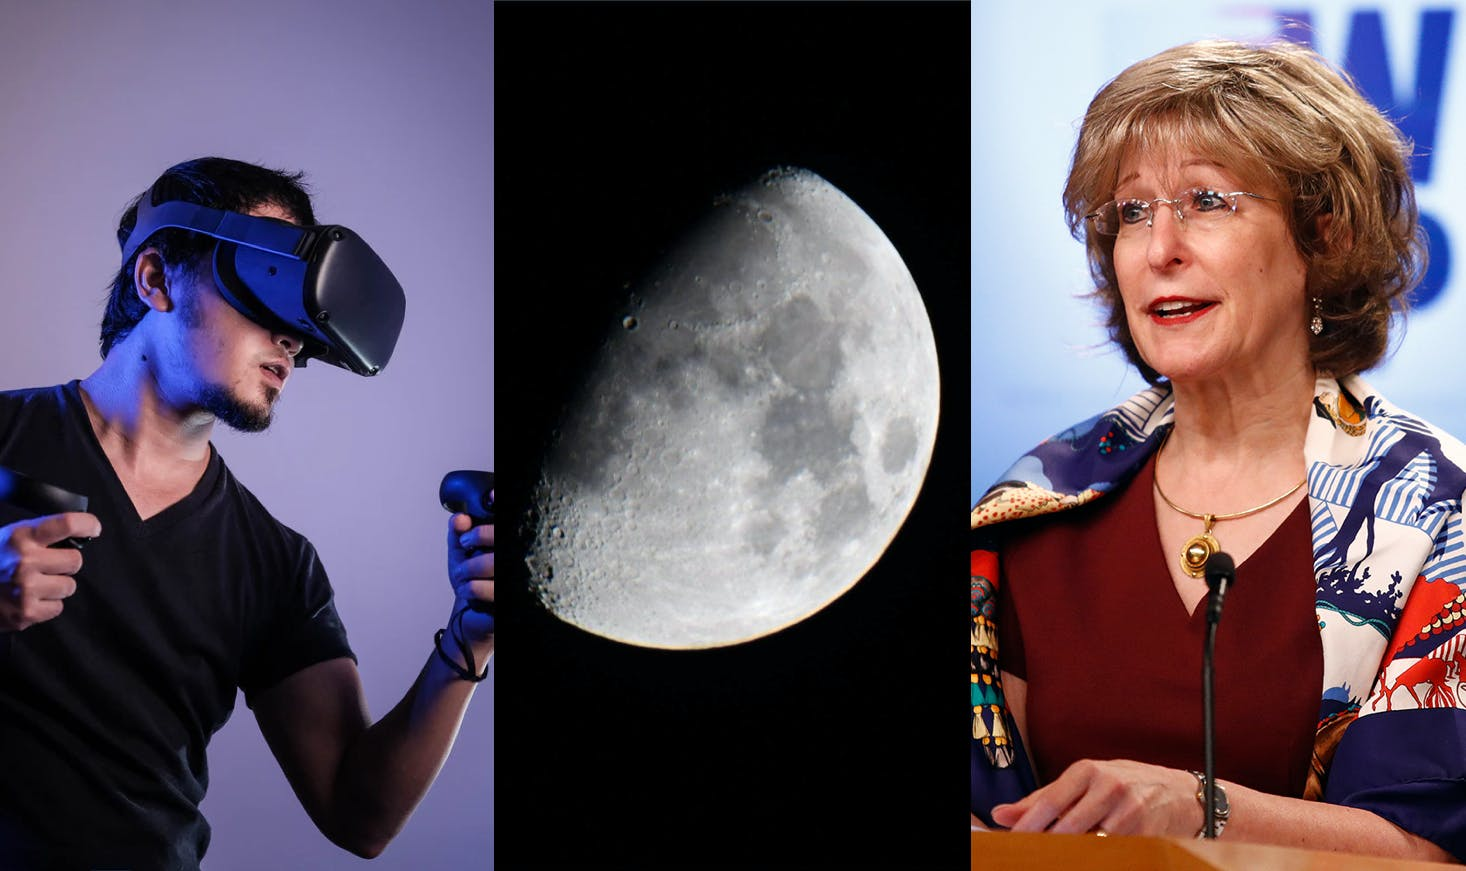 Why the VR revolution has been 5 minutes away for 8 years—NASA and Nokia look to bring 4G to the moon—USAID Deputy Administrator Bonnie Glick travels to Finland to discuss agreements for 5G infrastructure in developing nations